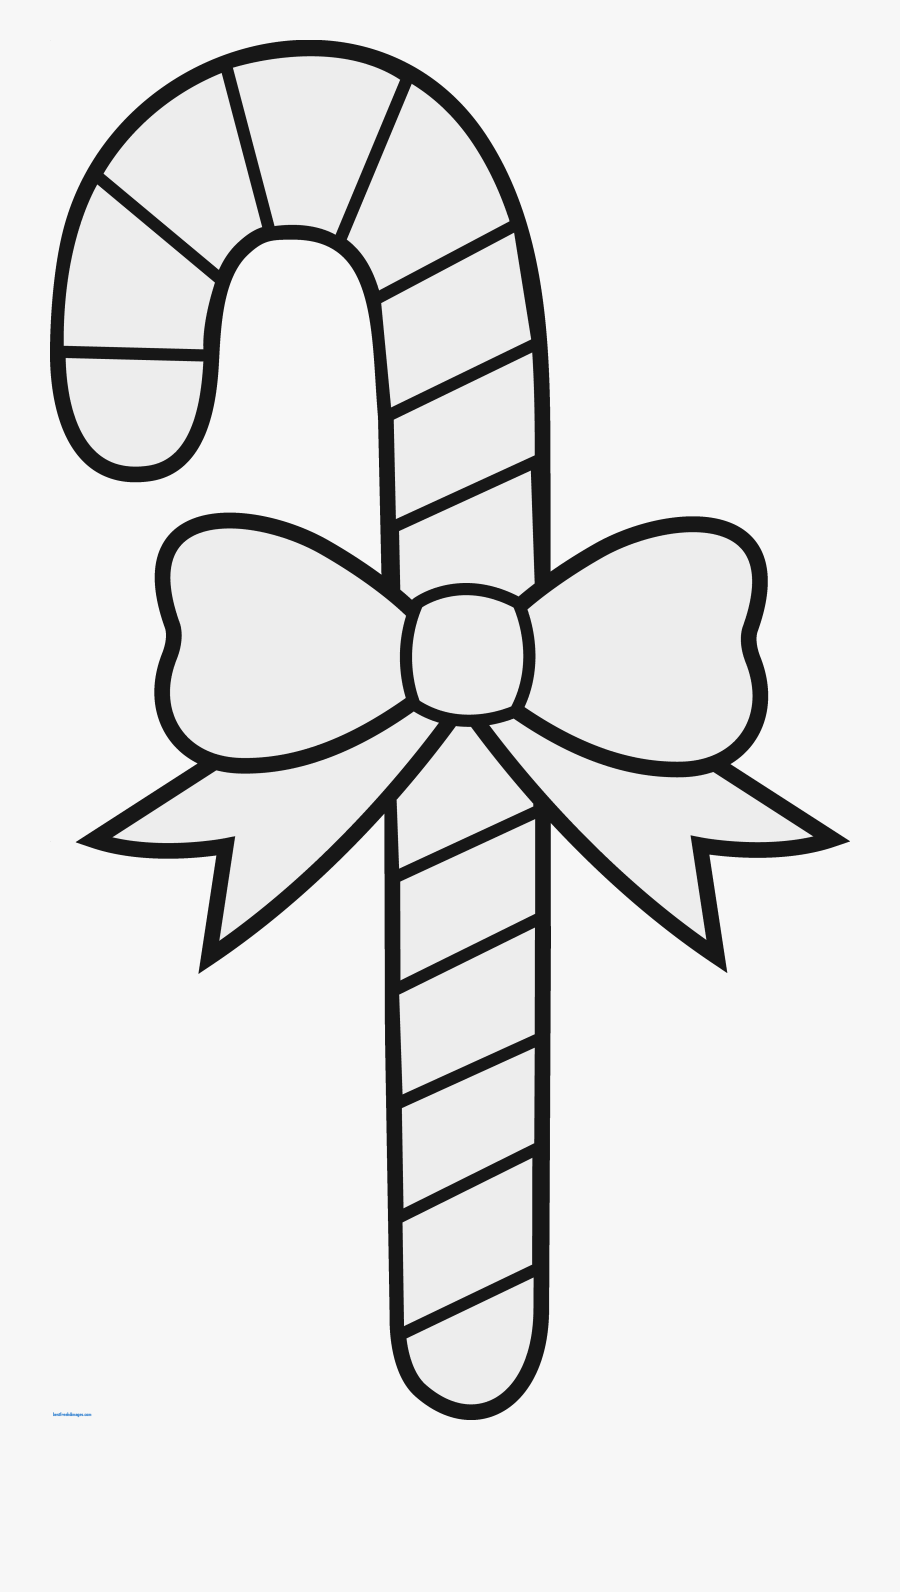 Transparent String Lights Clipart Black And White - Christmas Drawings Candy Cane, Transparent Clipart